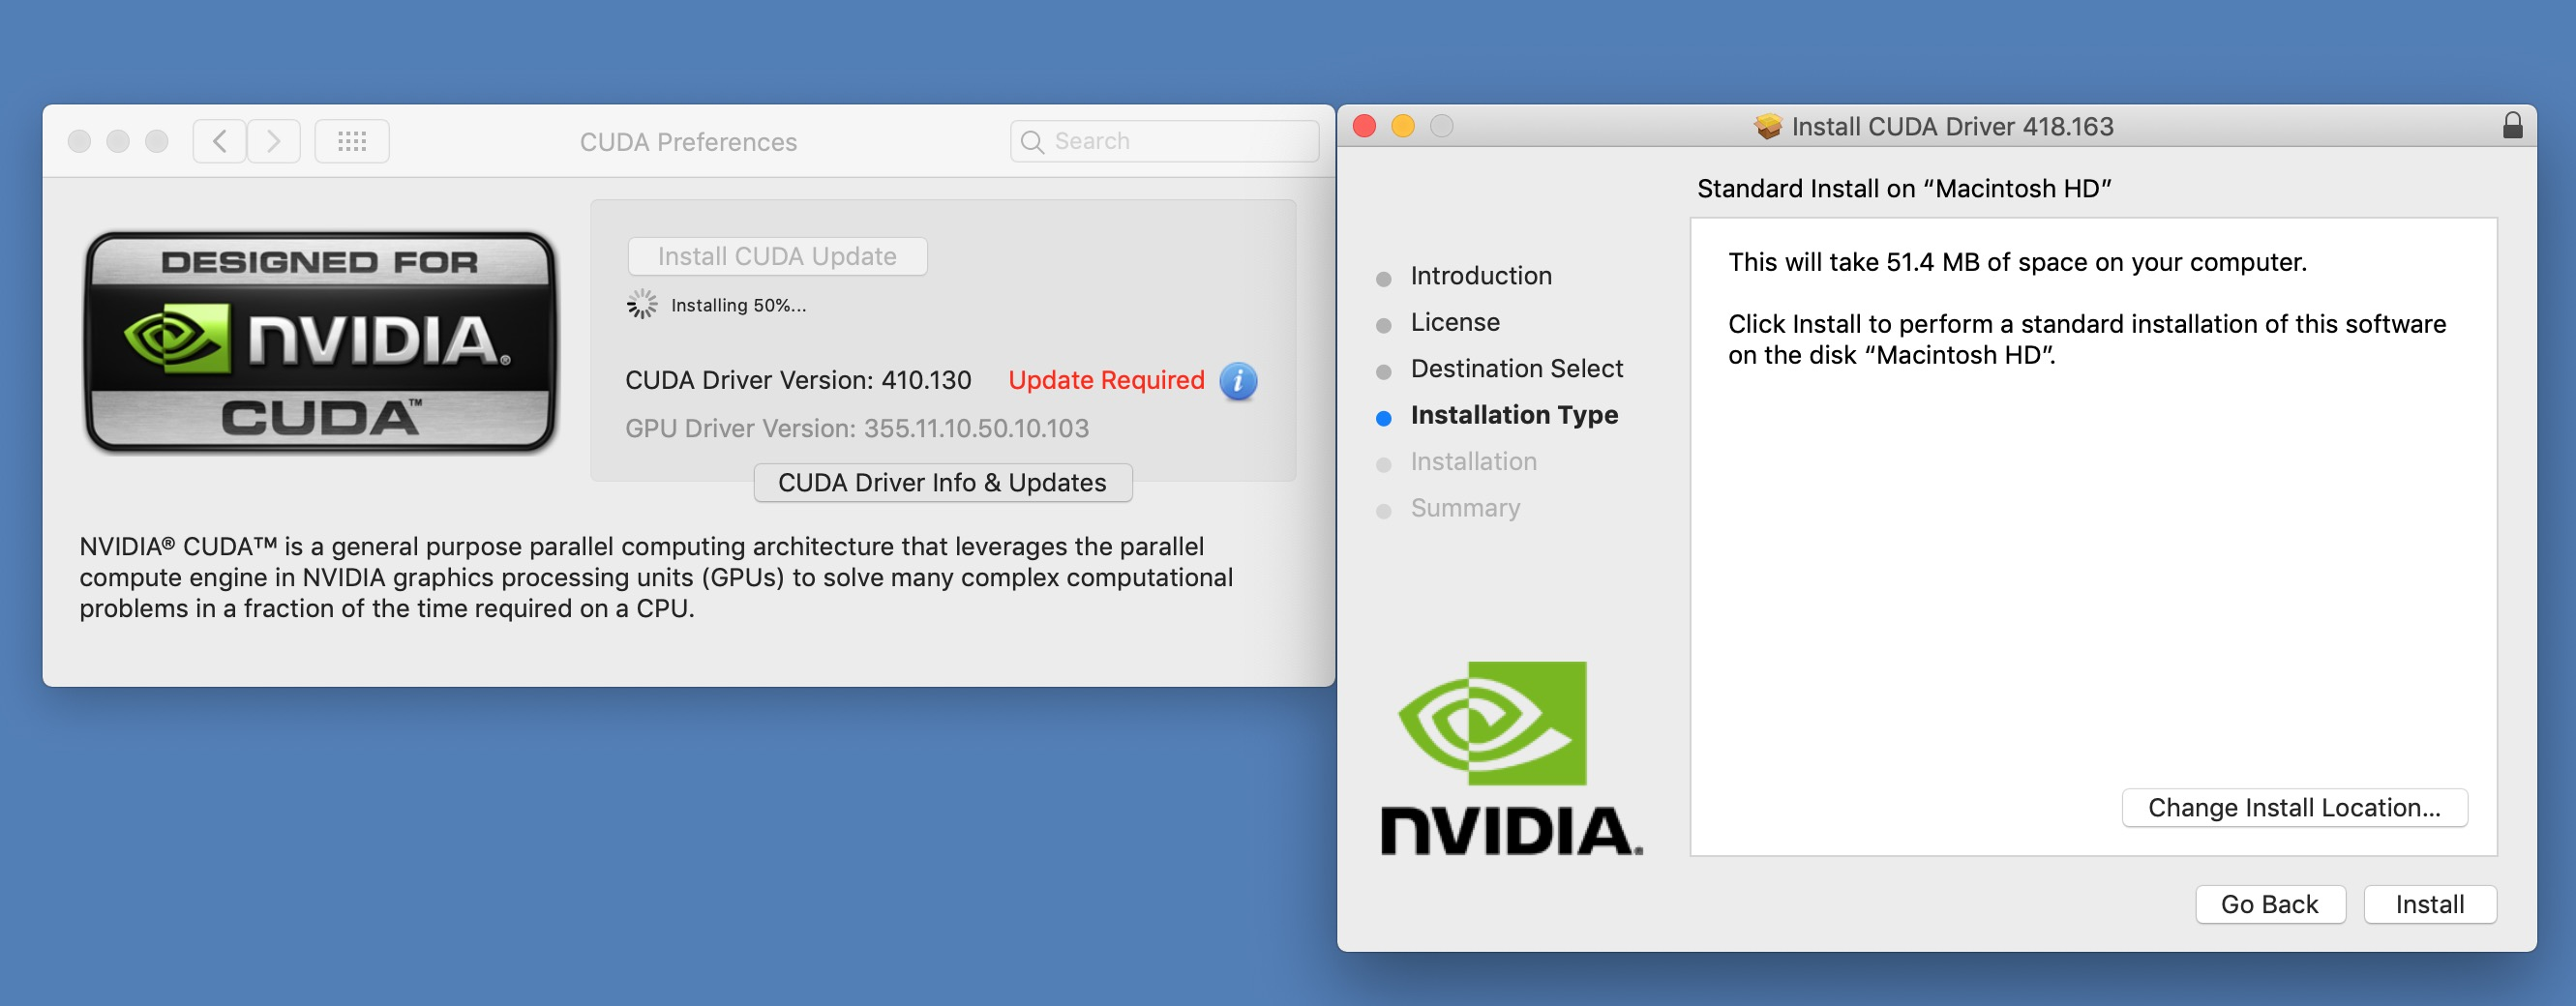 Officially official: NVIDIA drops CUDA support for macOS 10